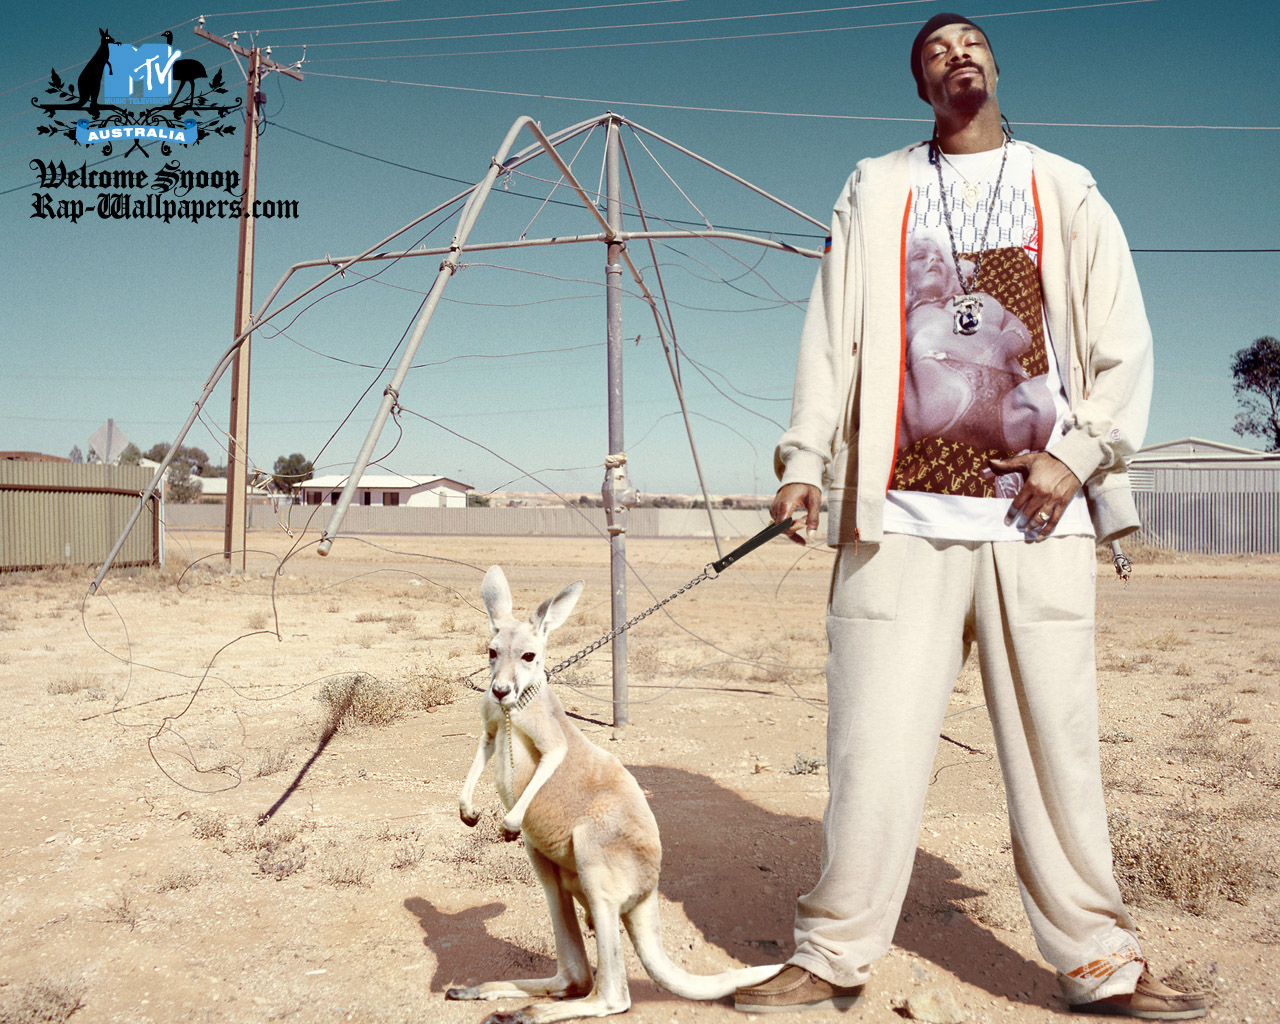 http://4.bp.blogspot.com/-udBGicBaMZo/T4cuc7PhFvI/AAAAAAAADN0/pULCwVwAMfE/s1600/wallpapers%20snoop%20dogg%20-%20australia%20-%20hd%20rap%20wallpapers.jpg